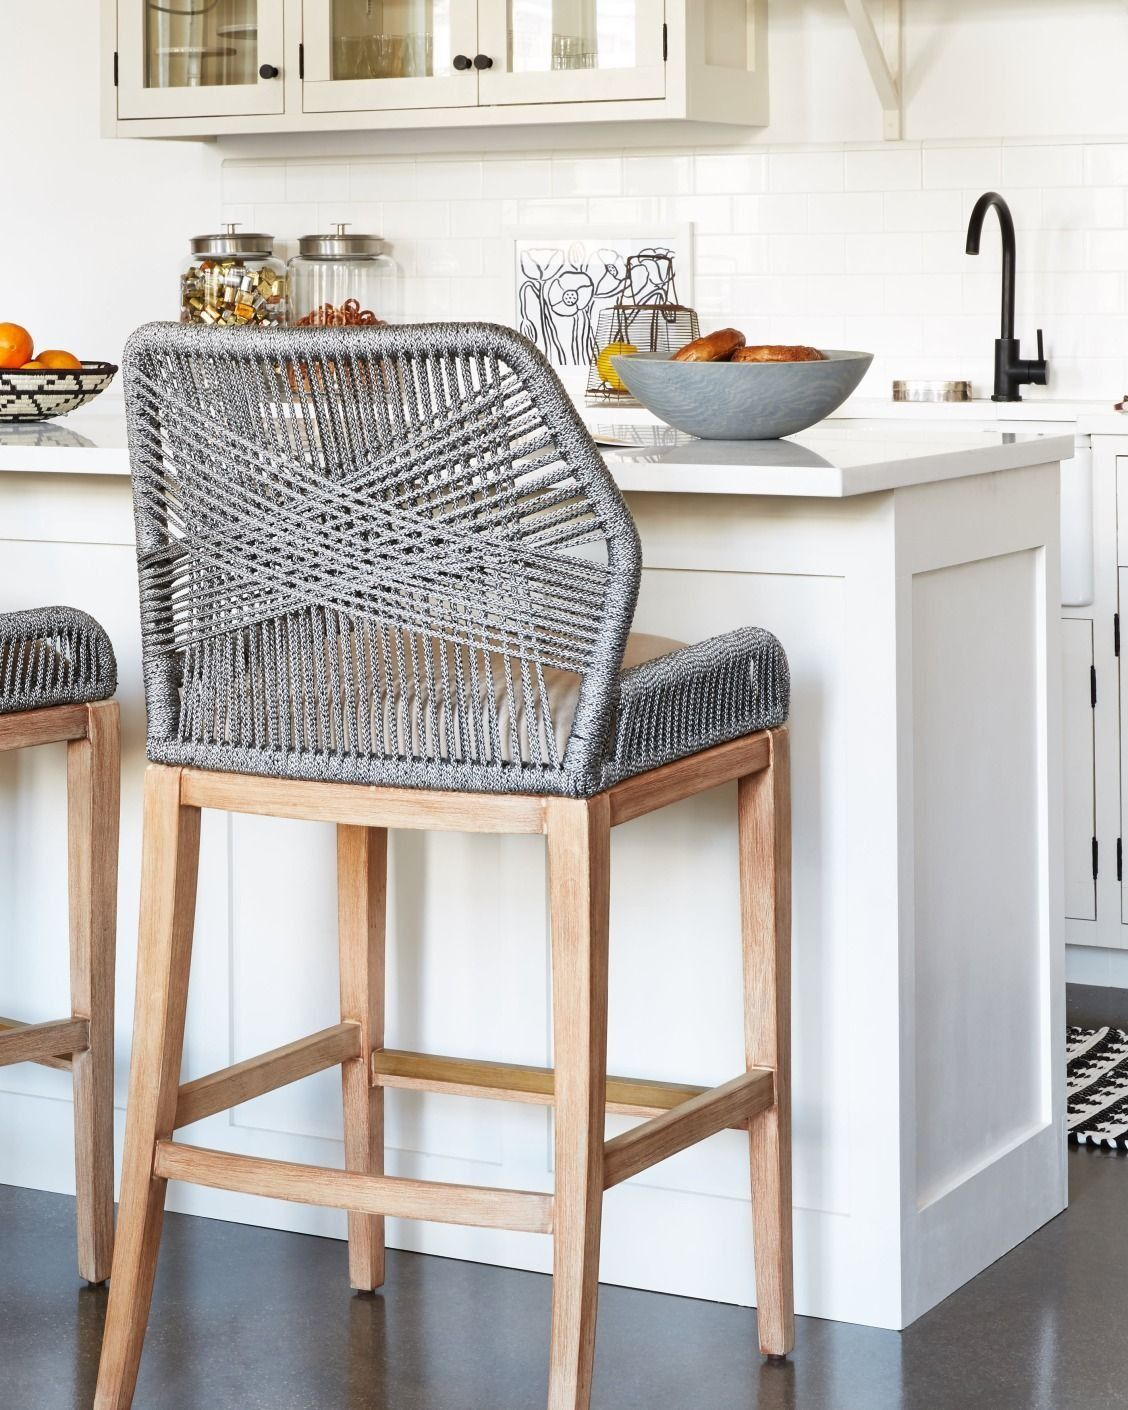 kitchen bar stool bamboo utensils these woven rope counter stools are such a fun unexpected accent